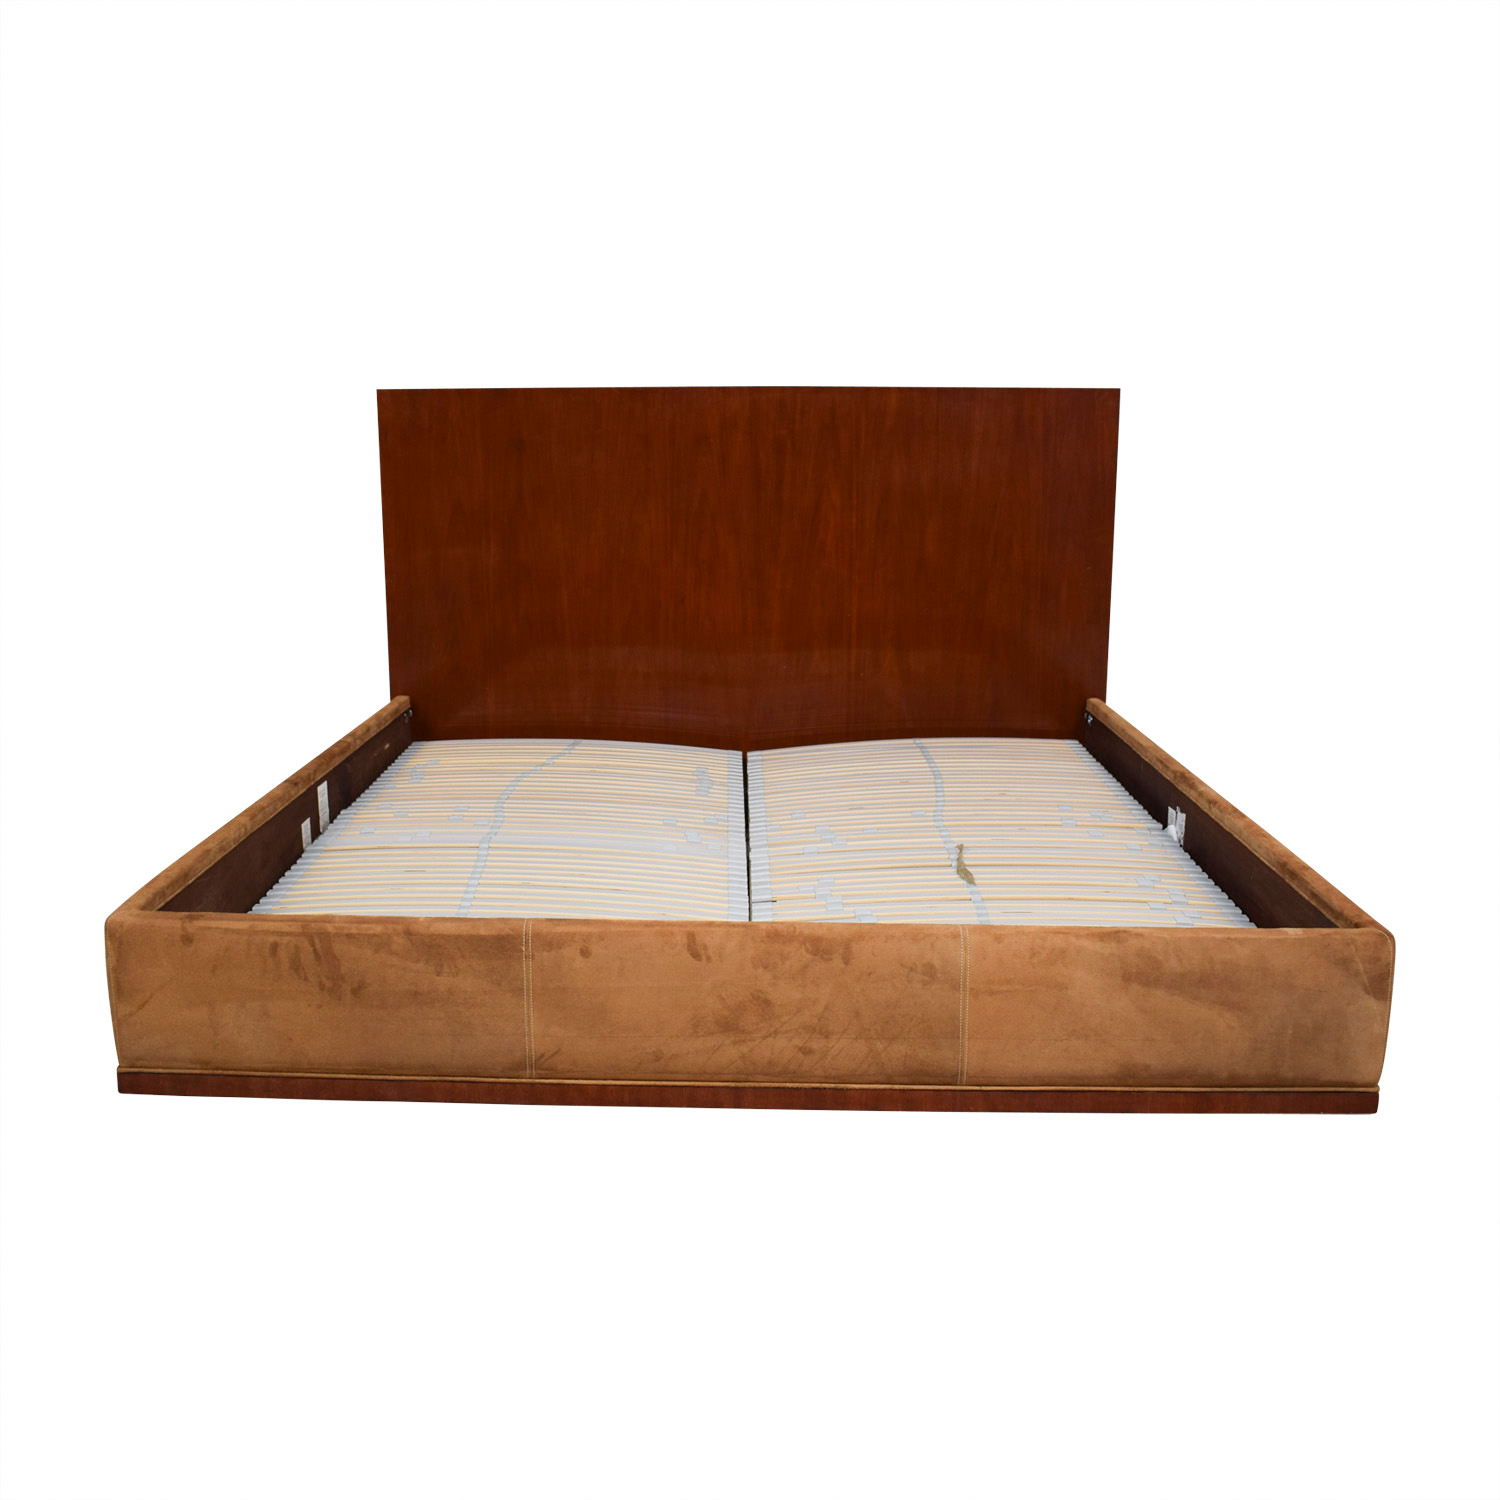 Ralph Lauren Home Ralph Lauren Home Modern Hollywood King Bed discount